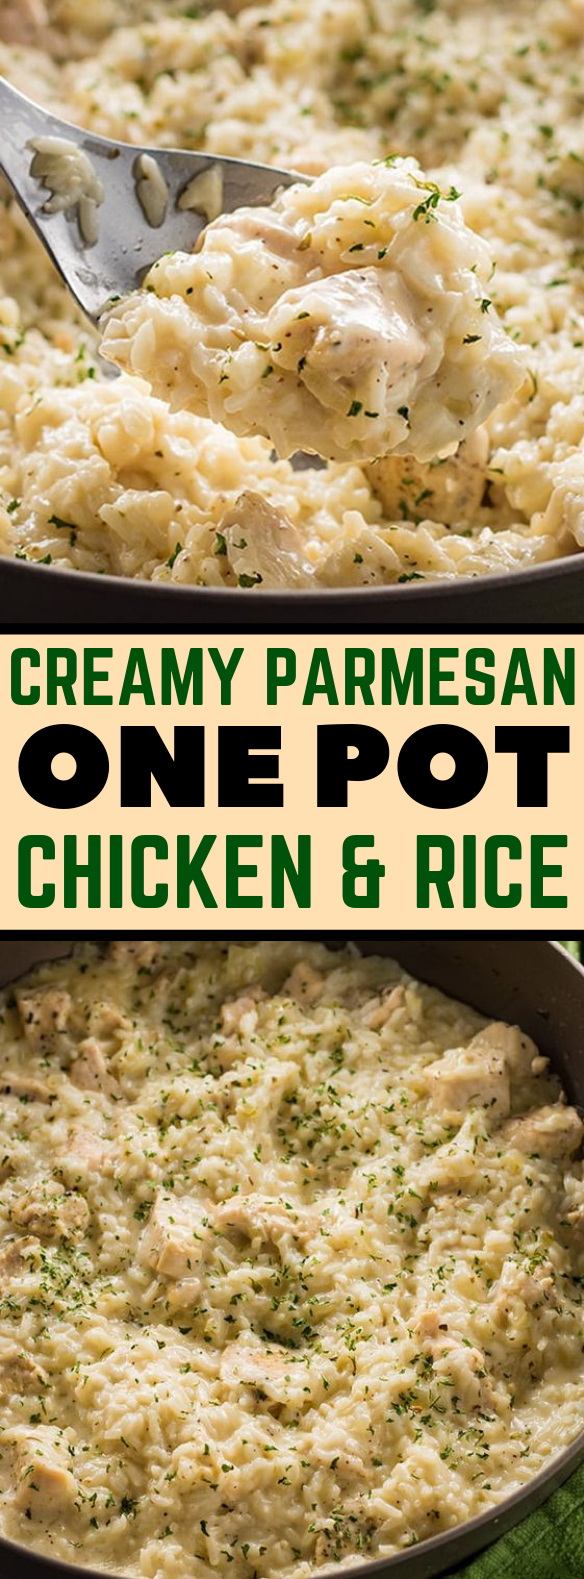 CREAMY PARMESAN ONE POT CHICKEN AND RICE #dinner #easyrecipe